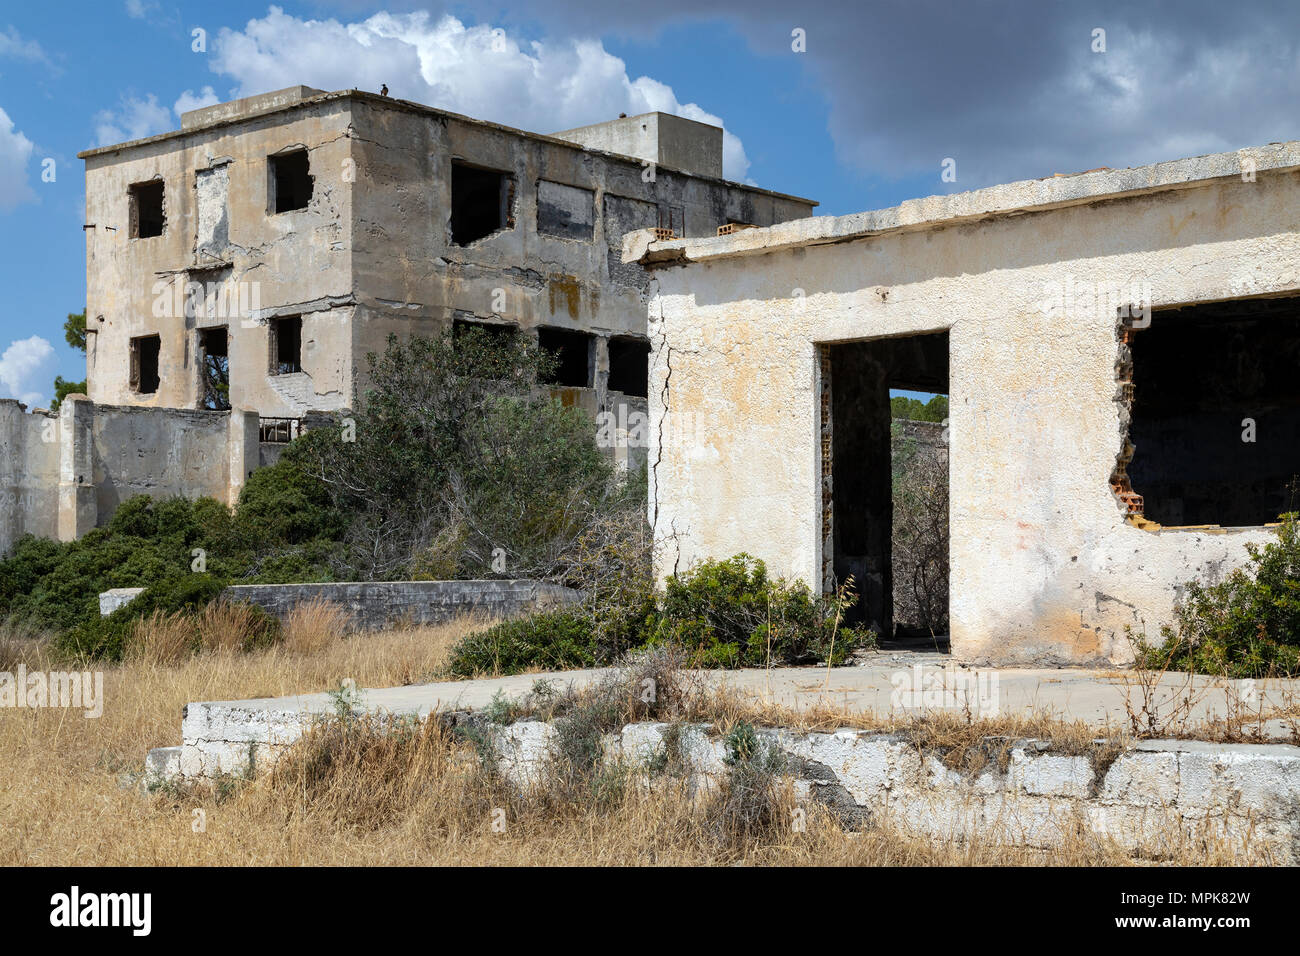 Abandoned buildings in Famagusta, Cyprus. During to the Turkish invasion of Cyprus in 1974, its inhabitants fled, when it came under Turkish control,  - Stock Image